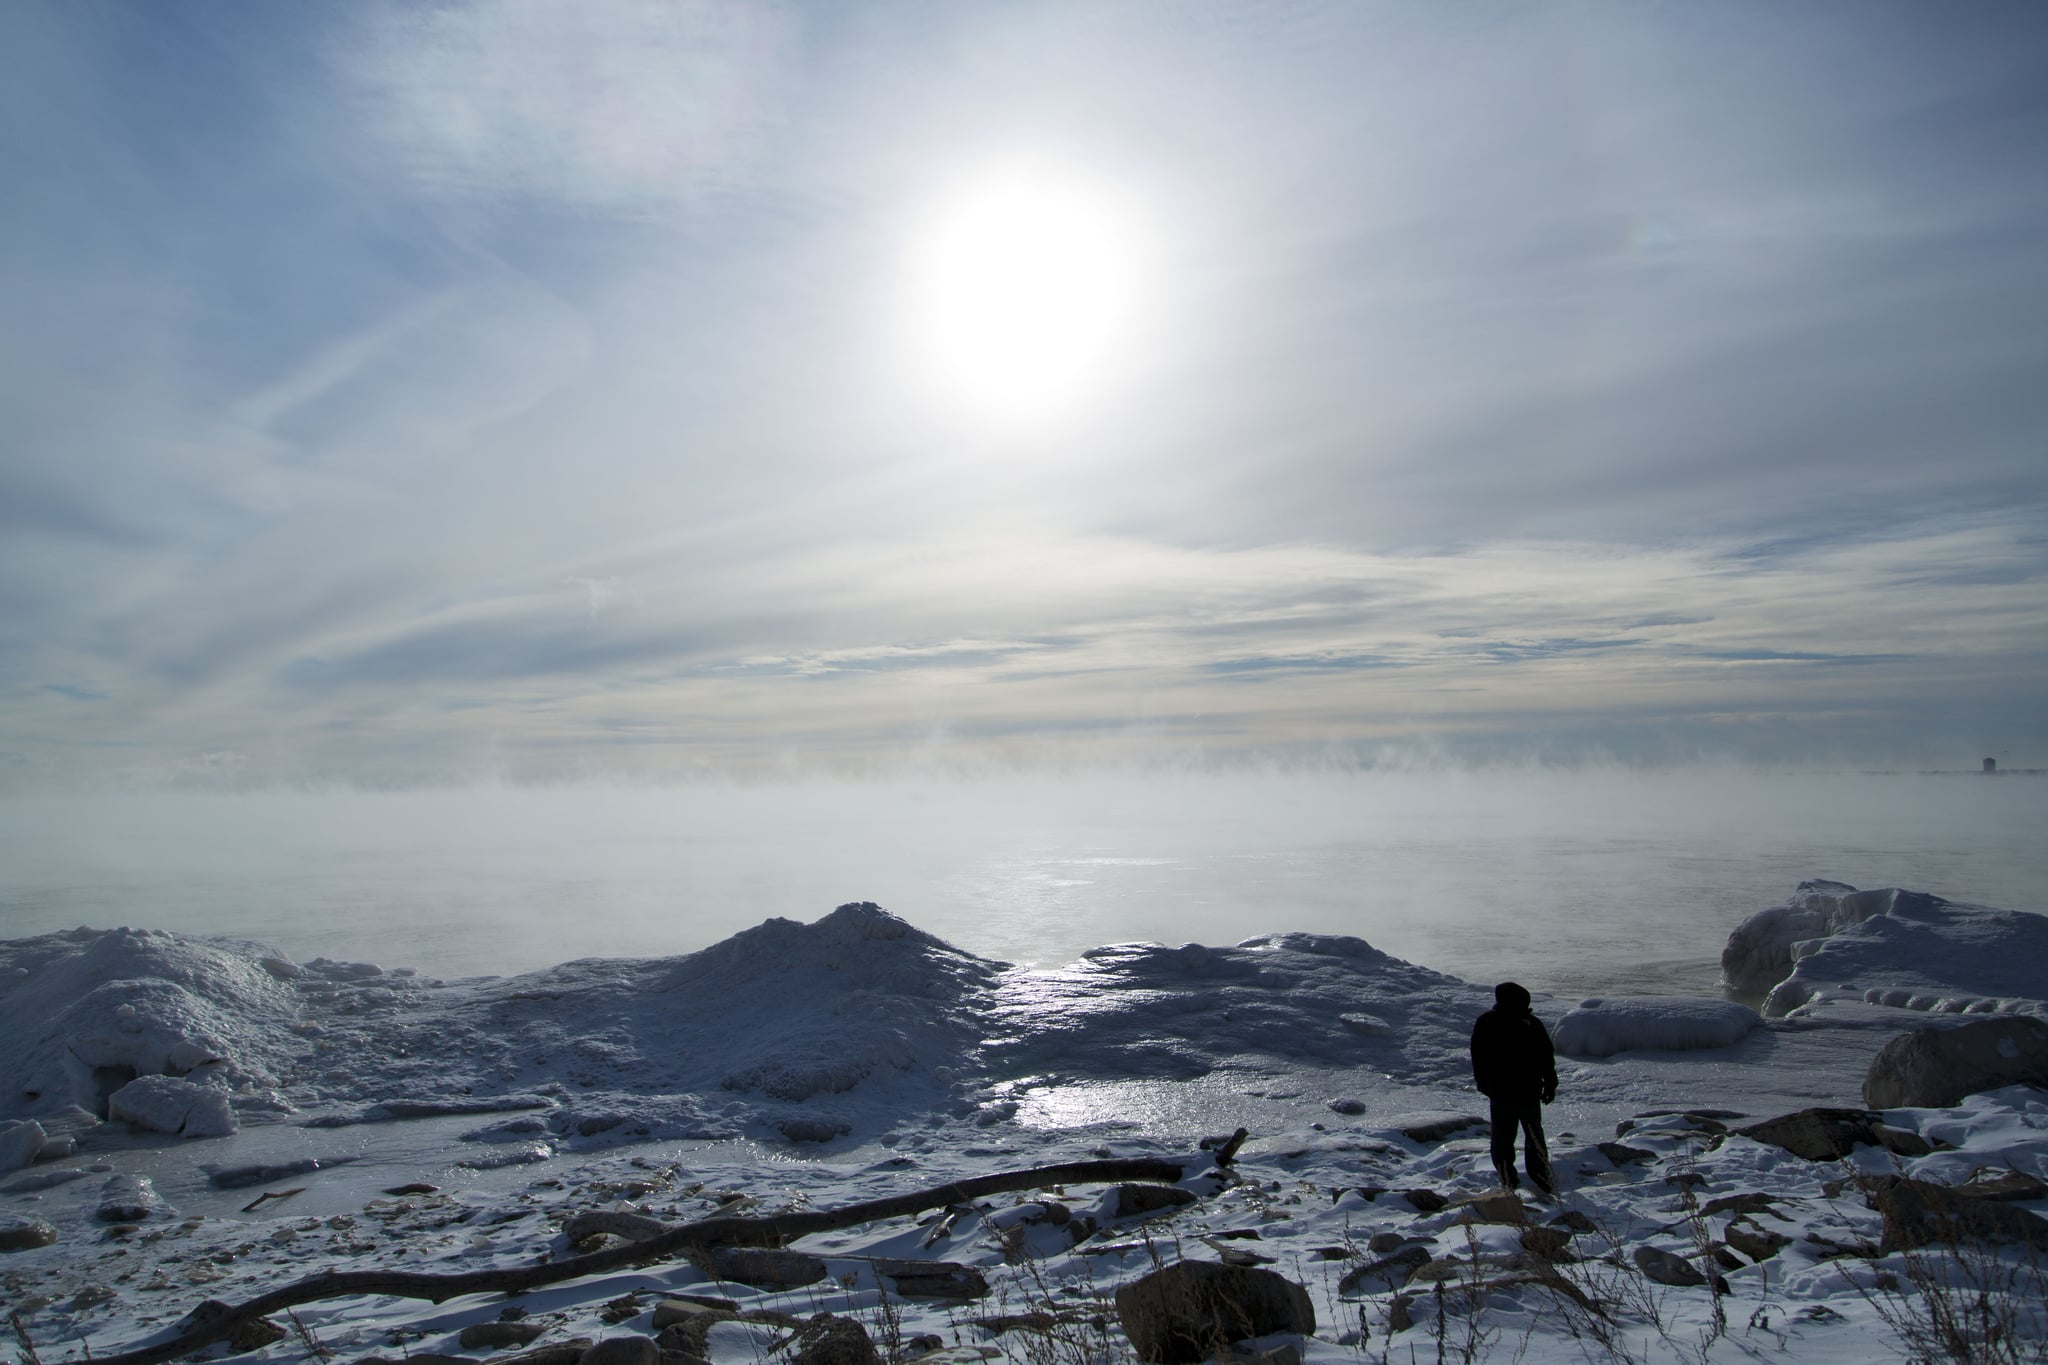 A man in Milwaukee, WI, walked along the shore of Lake Michigan.